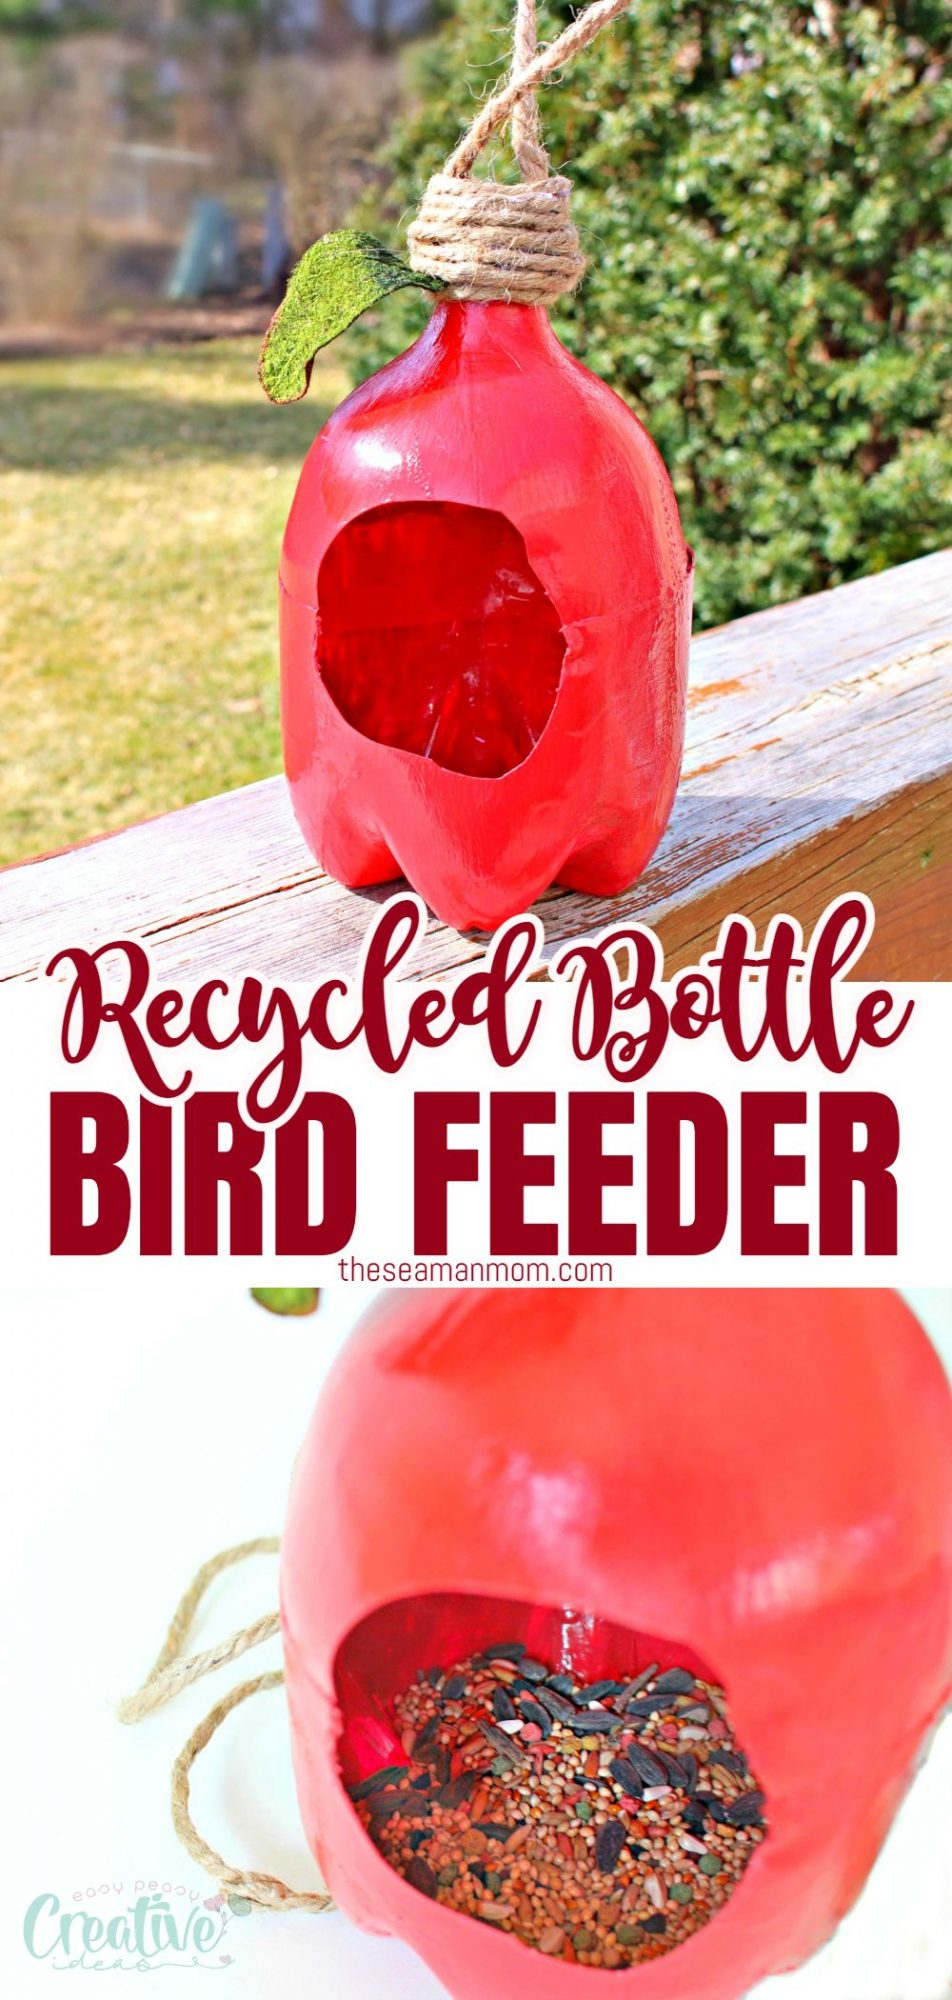 A photo collage of a red bird feeder made from recycled plastic bottle and shaped like an apple, filled with mixed seeds